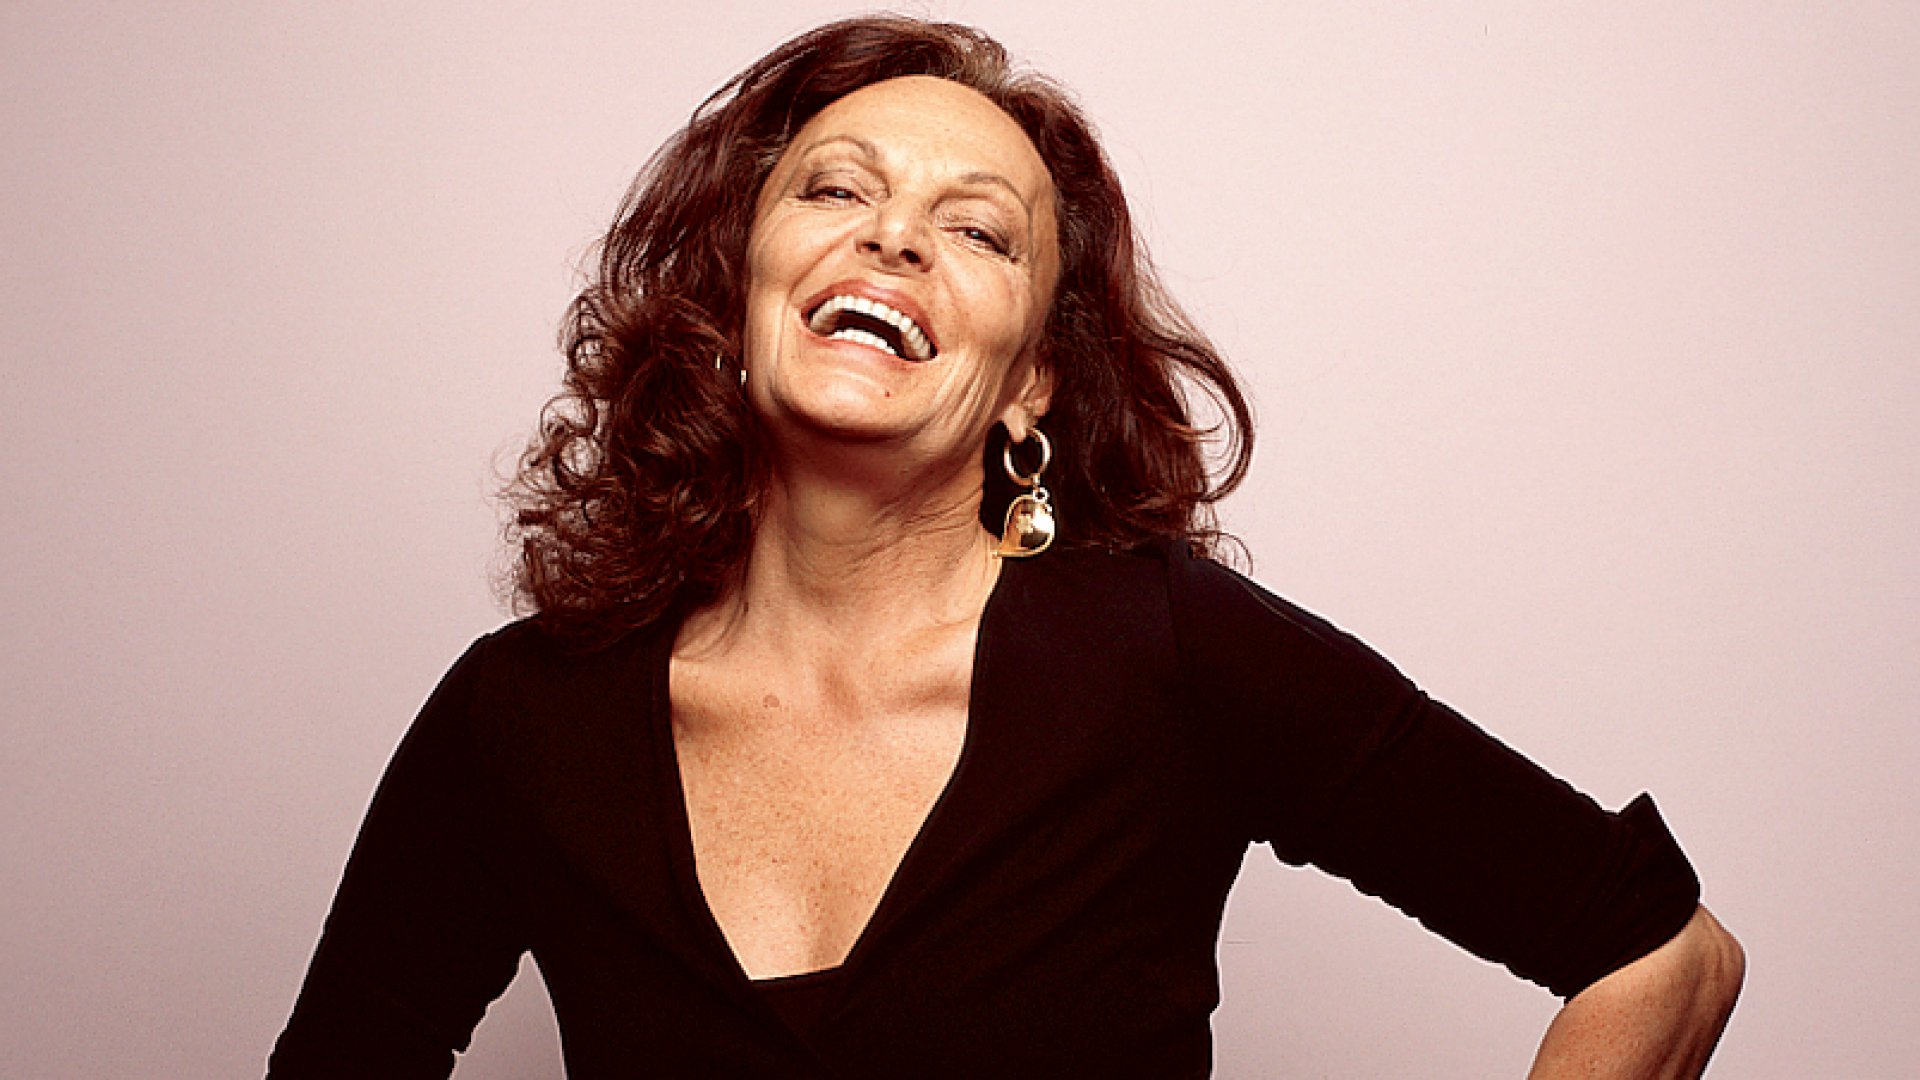 Diane von Furstenberg in 2005: From Icon to Has-Been and Back Again